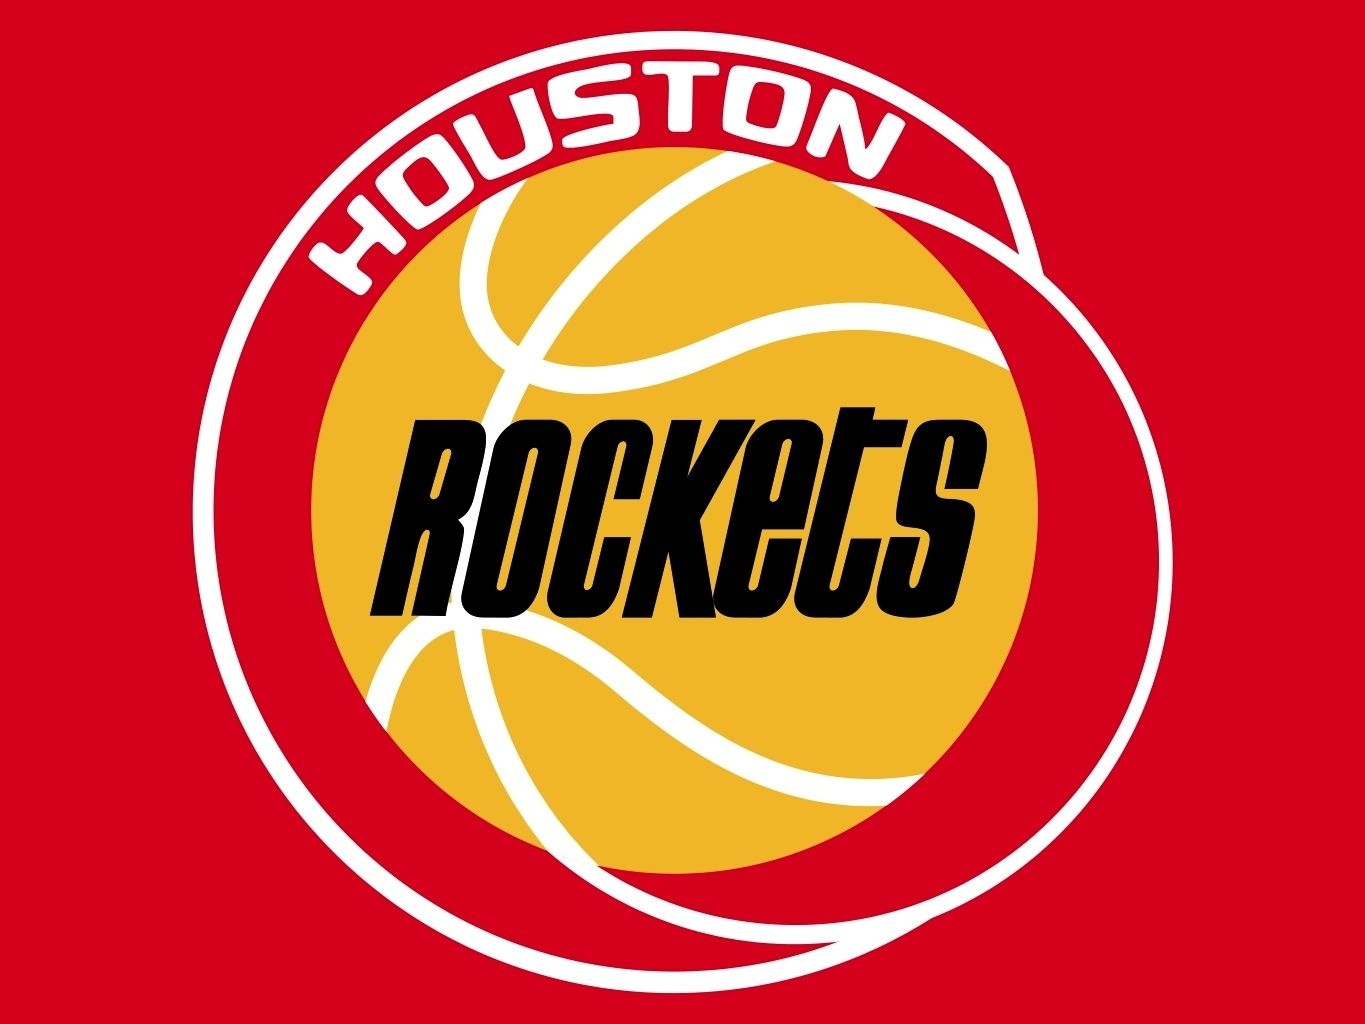 Pics photos houston texans logo chris creamer s sports - Buy Houston Rockets Tickets Today Rockets Logosports